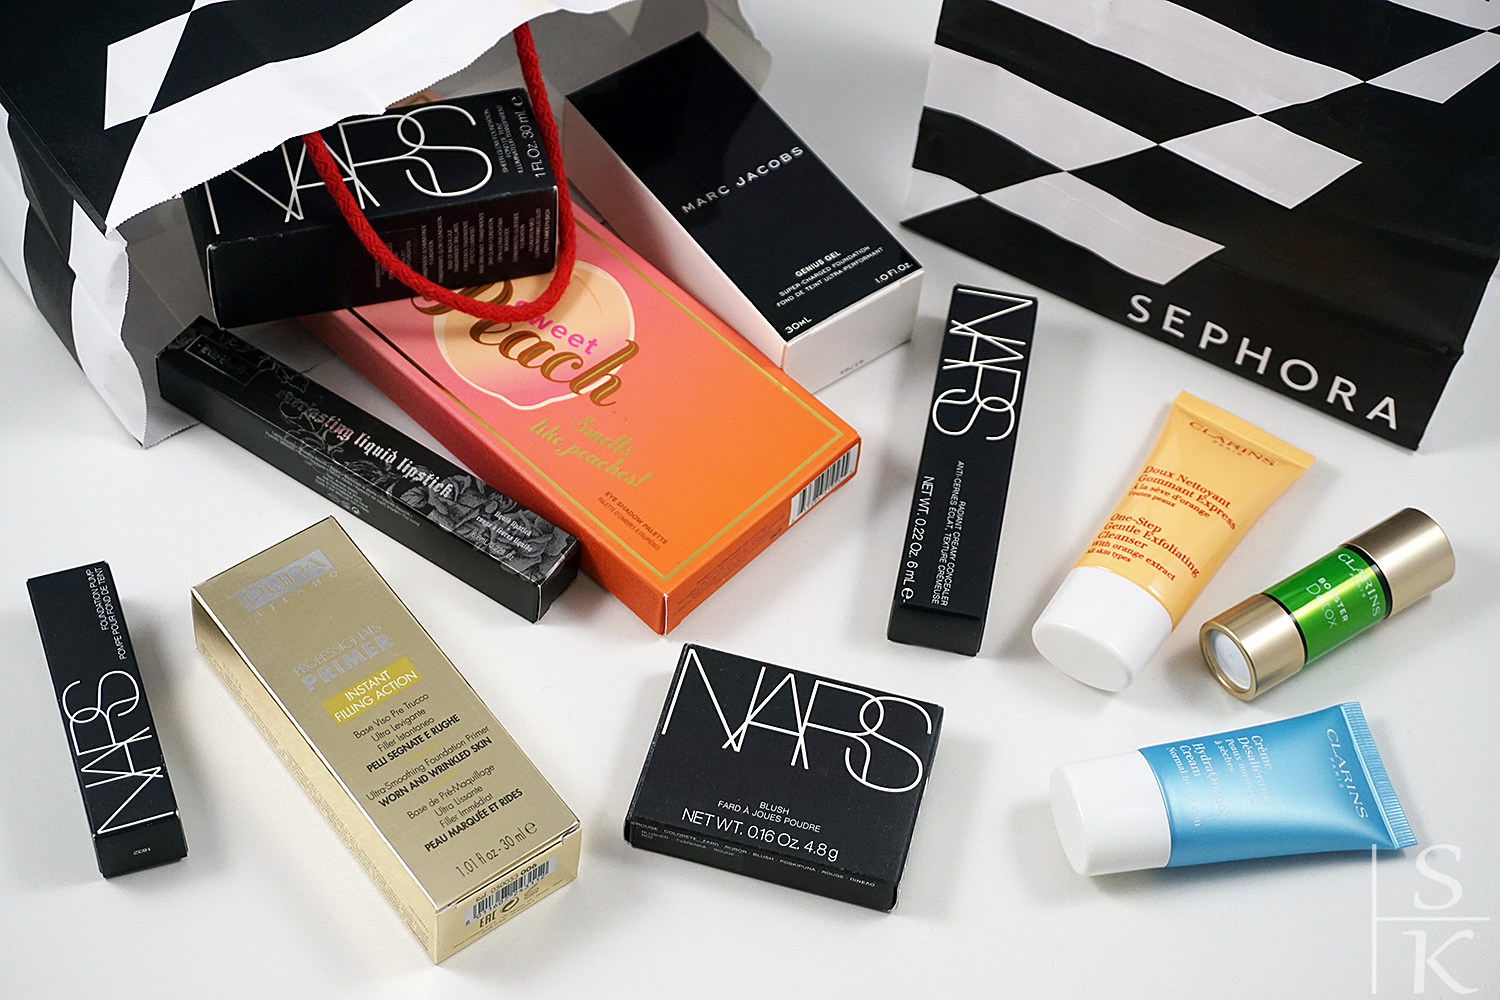 Sephora Haul - Nars, Too Faced, Marc Jacobs @Saskia-Katharina Most, Horizont-Blog